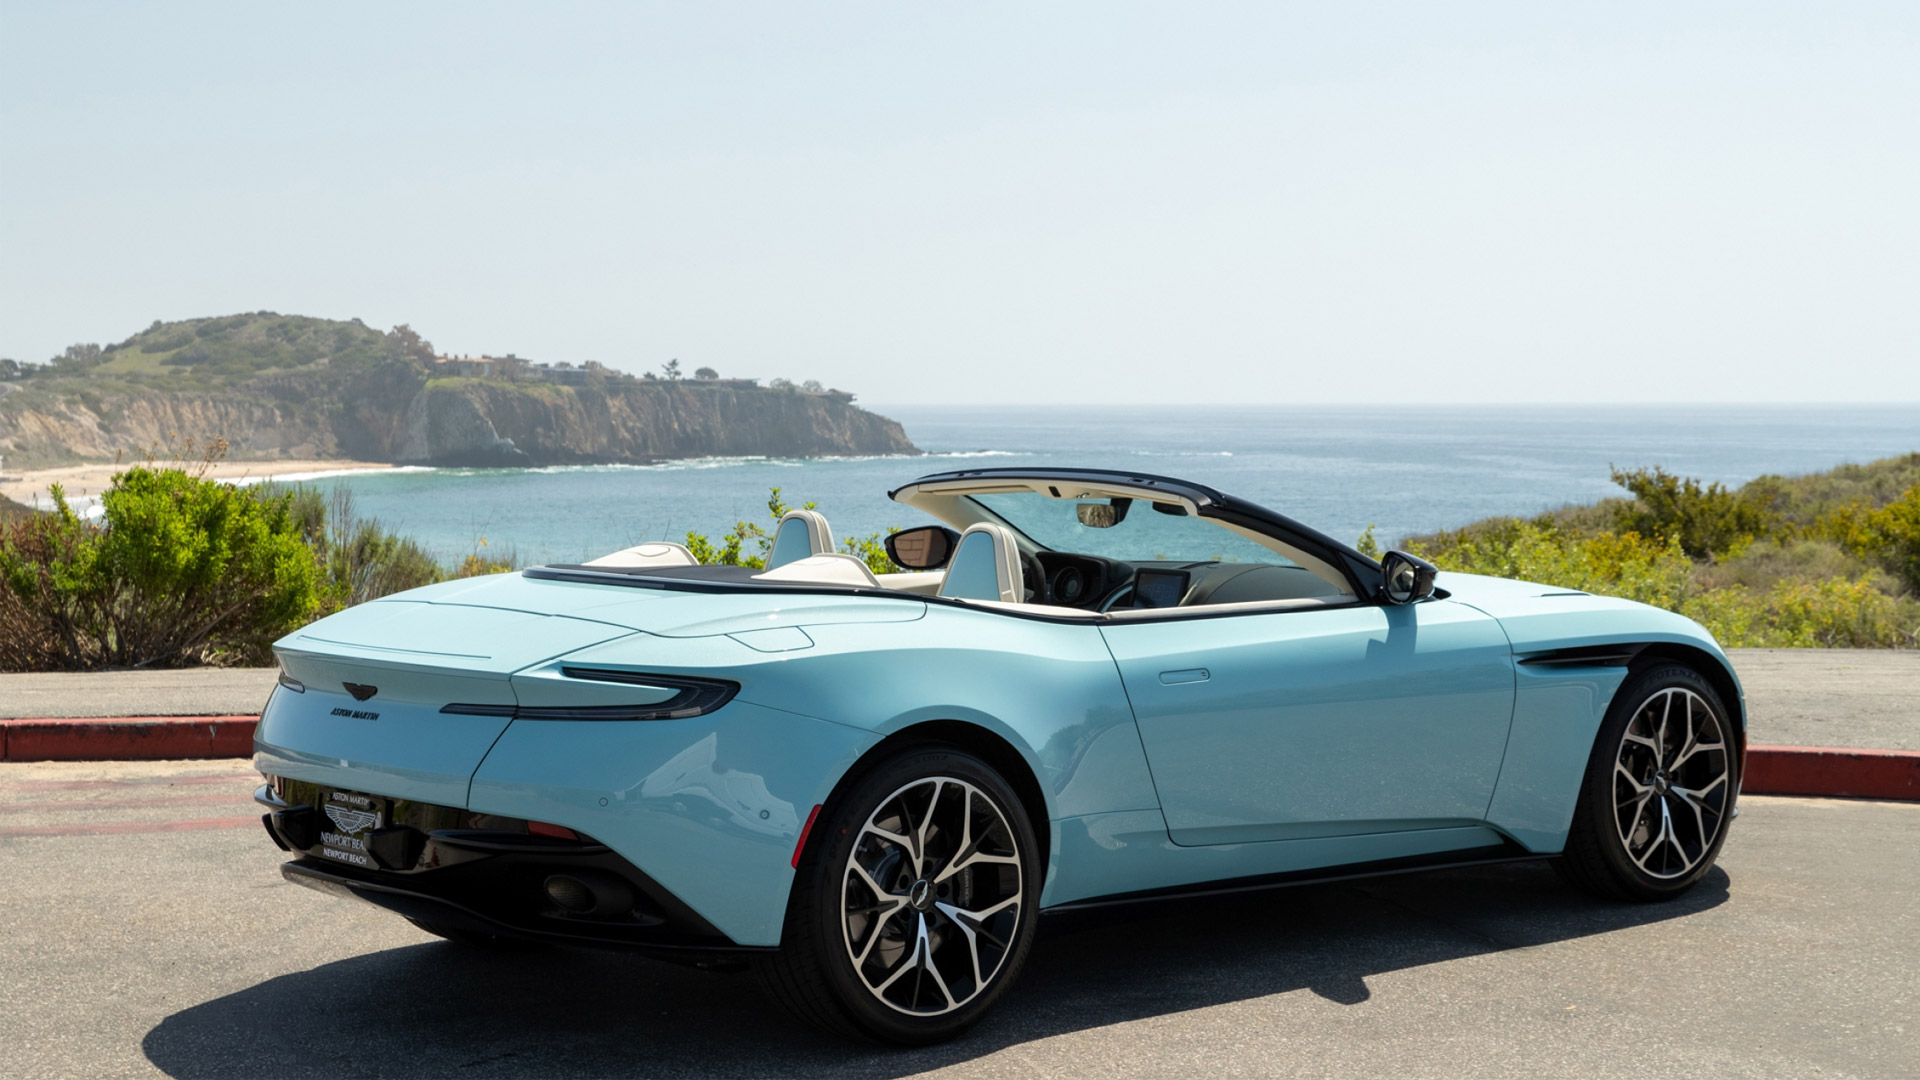 The Aston Martin DB11 Volante in Light Blue with the Top Down